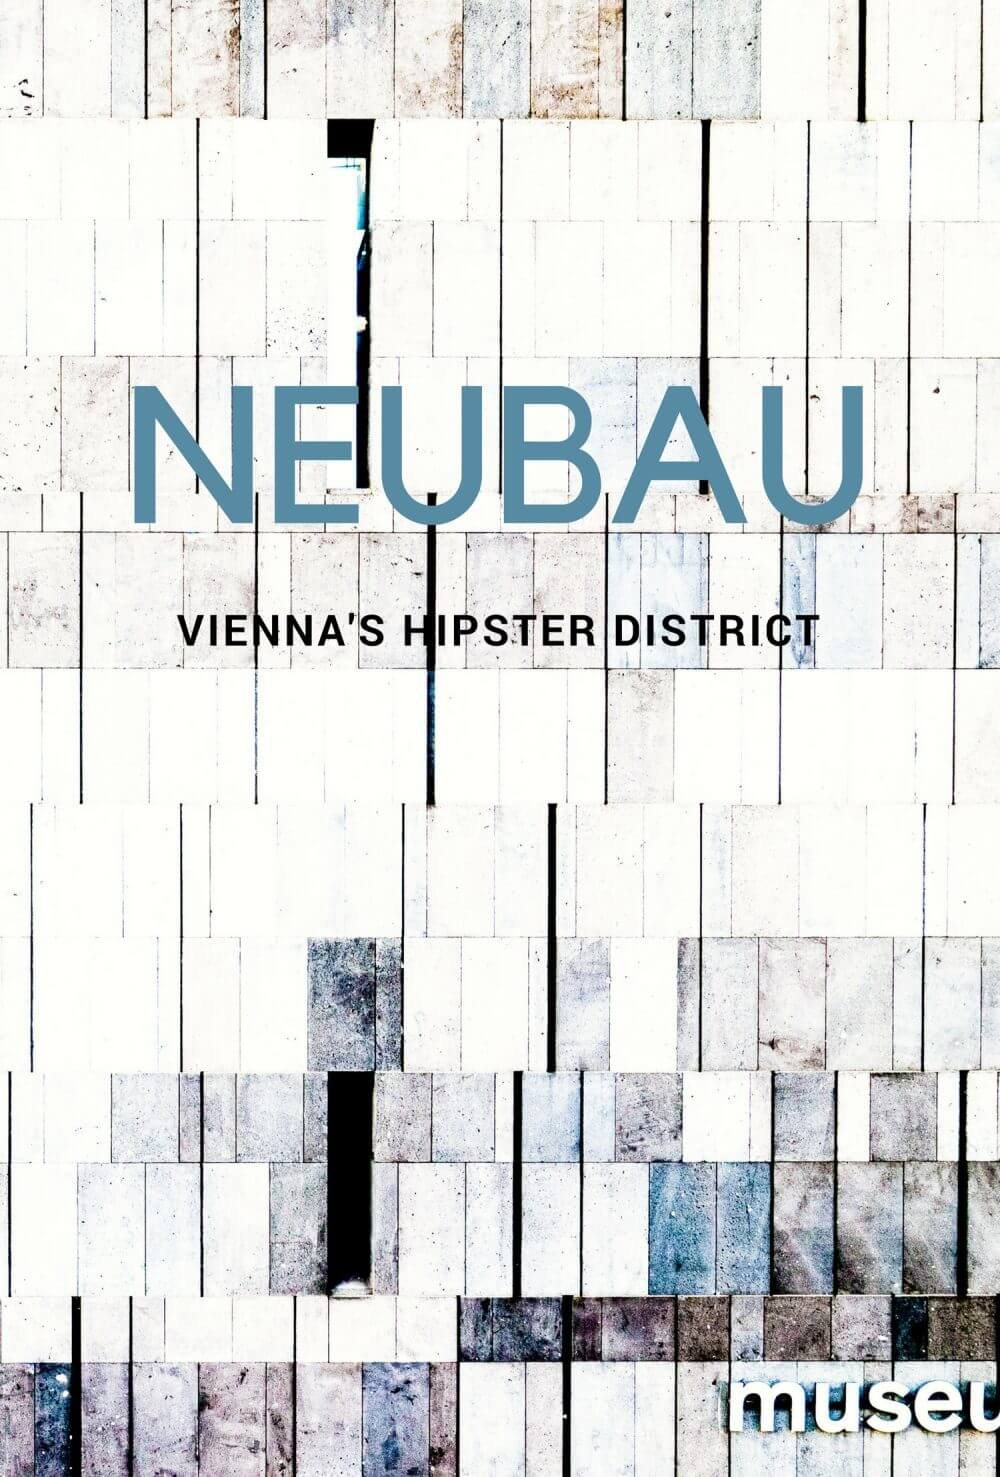 Neubau: Vienna's Hipster District